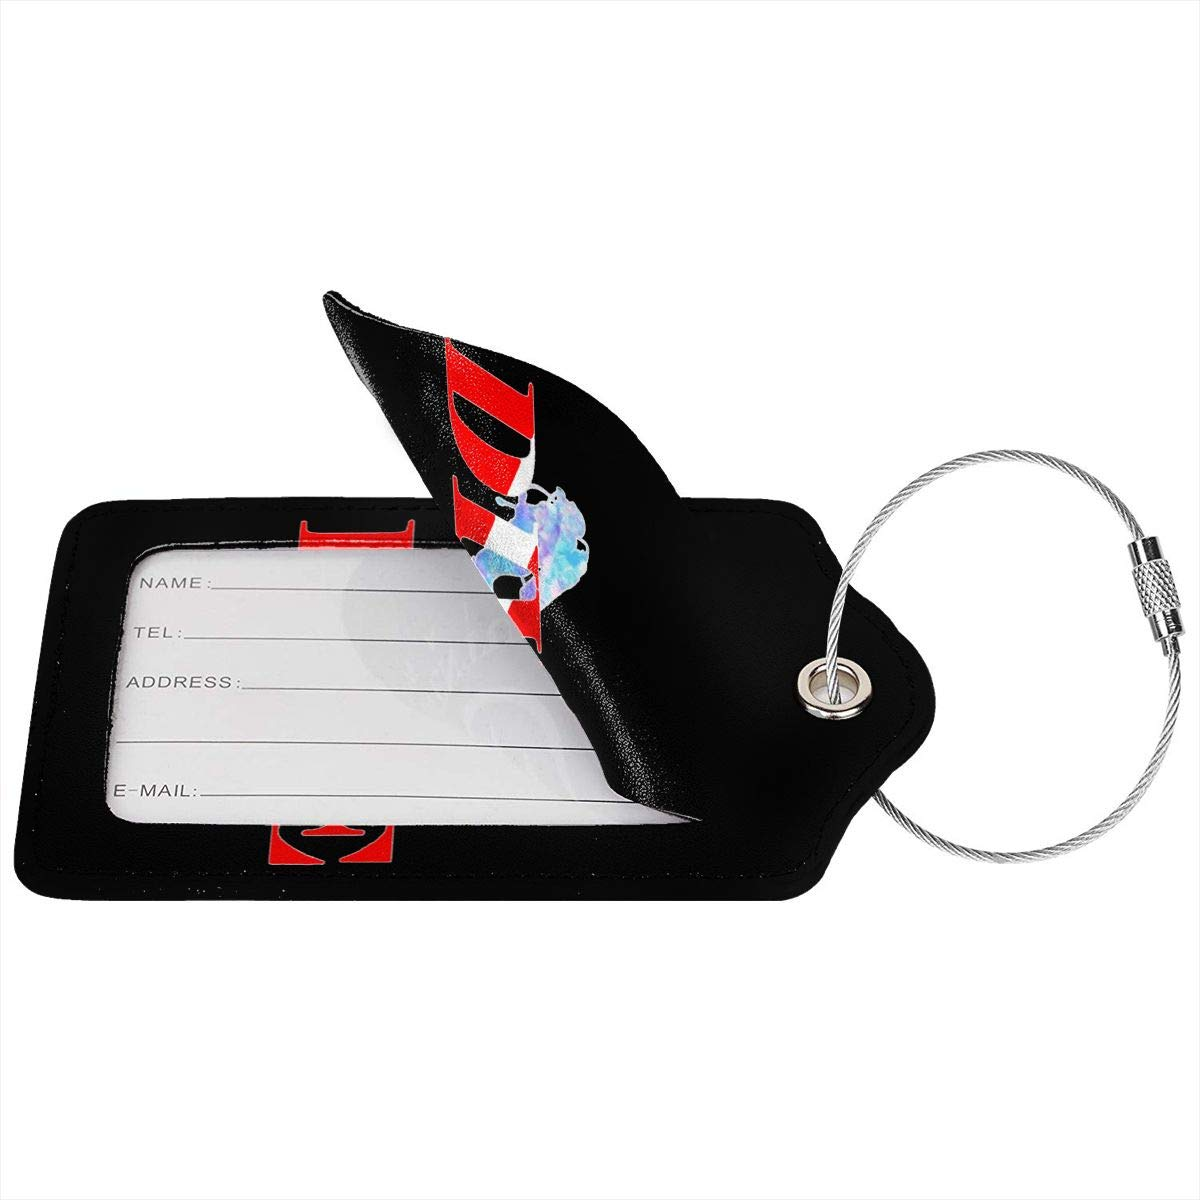 Scuba Diver Dive Down Flag Dive Leather Luggage Tags Suitcase Tag Travel Bag Labels With Privacy Cover For Men Women 2 Pack 4 Pack